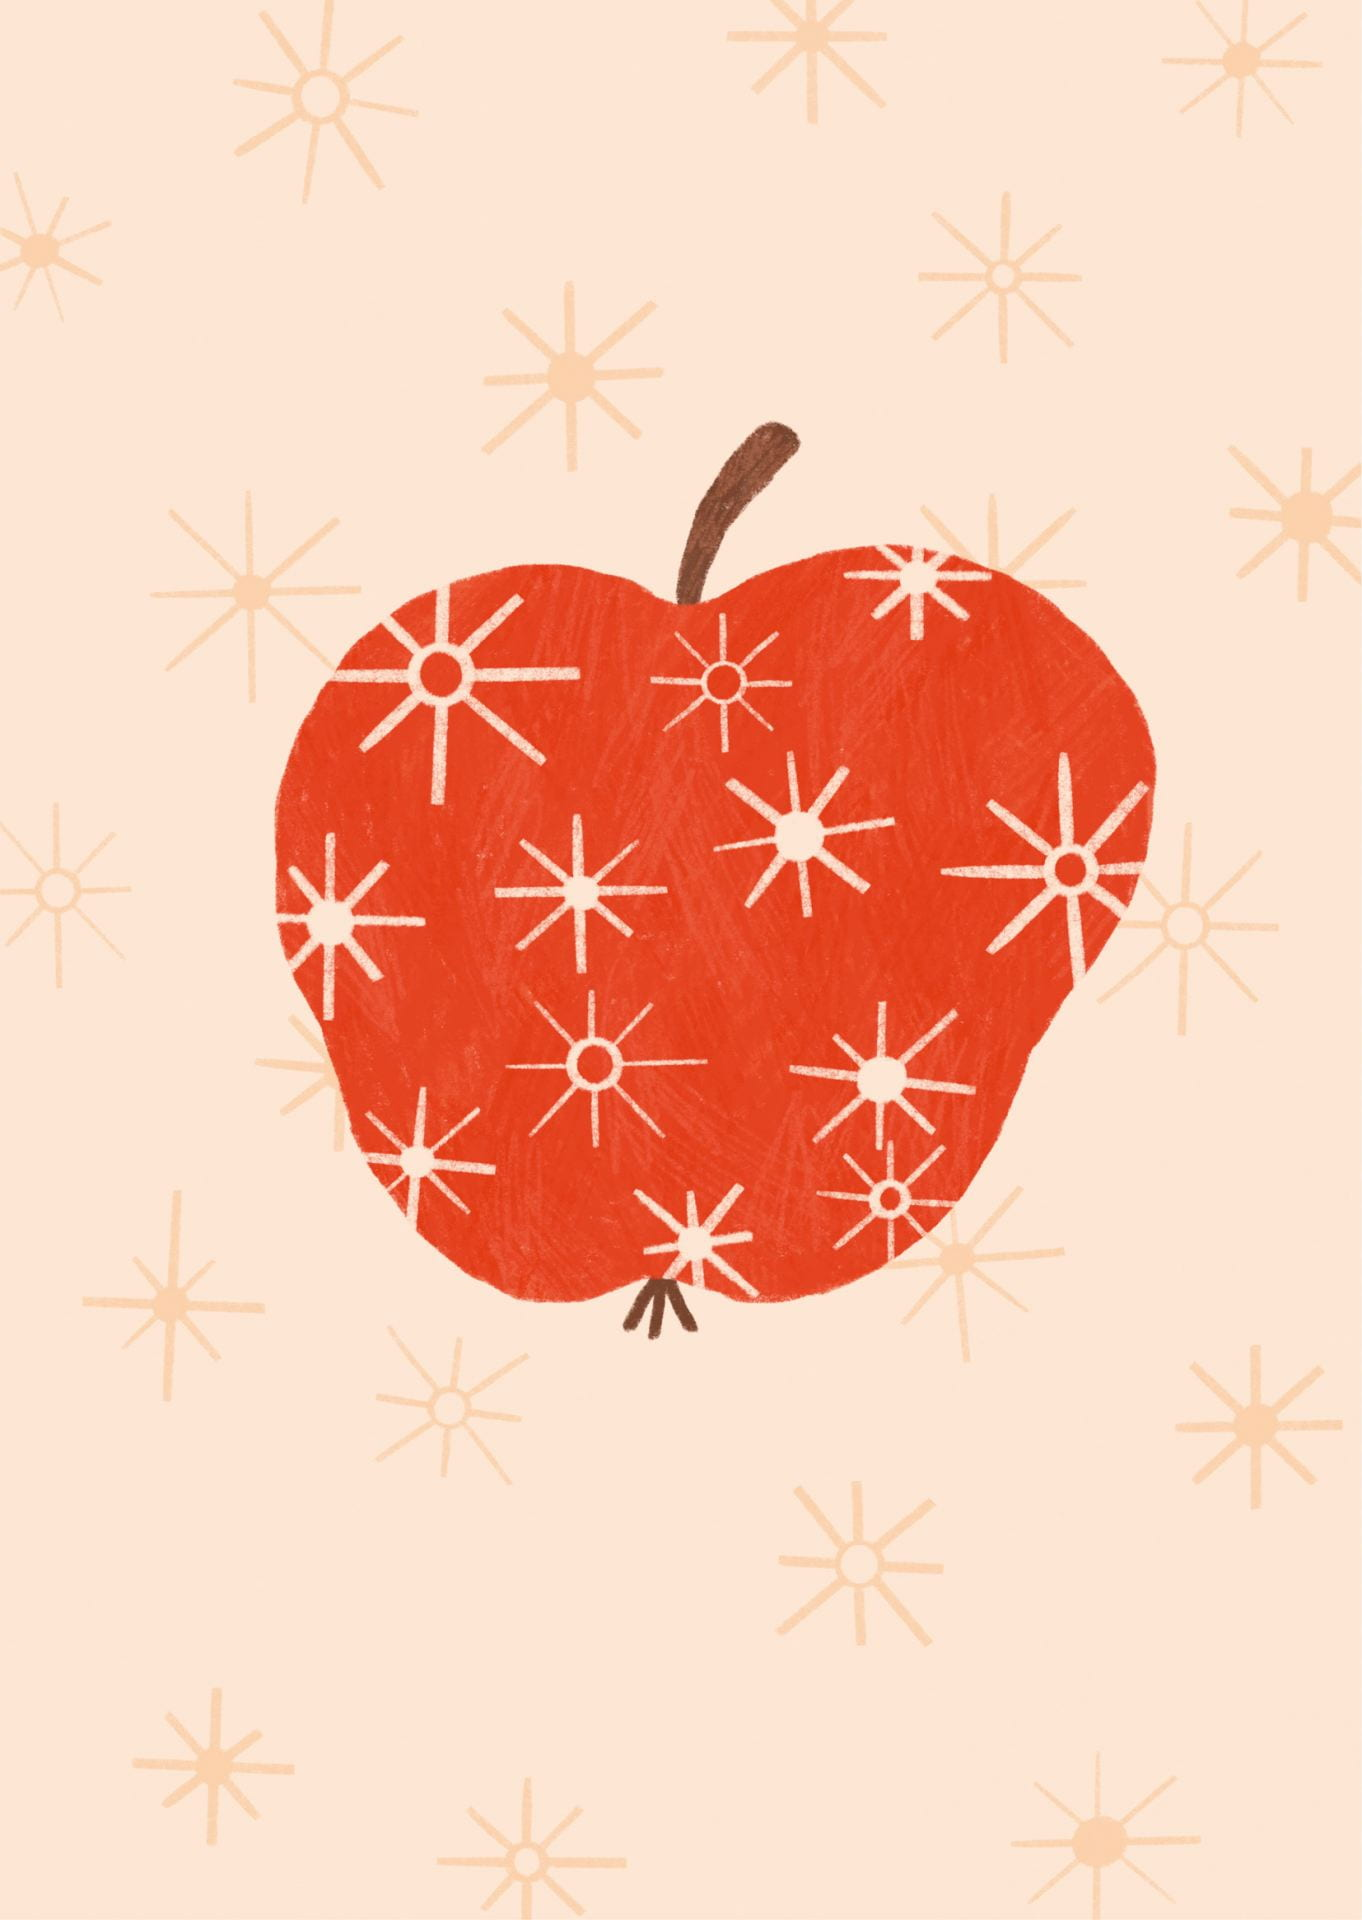 A minimalist illustration of an apple, with sparkling star designs on the foreground.